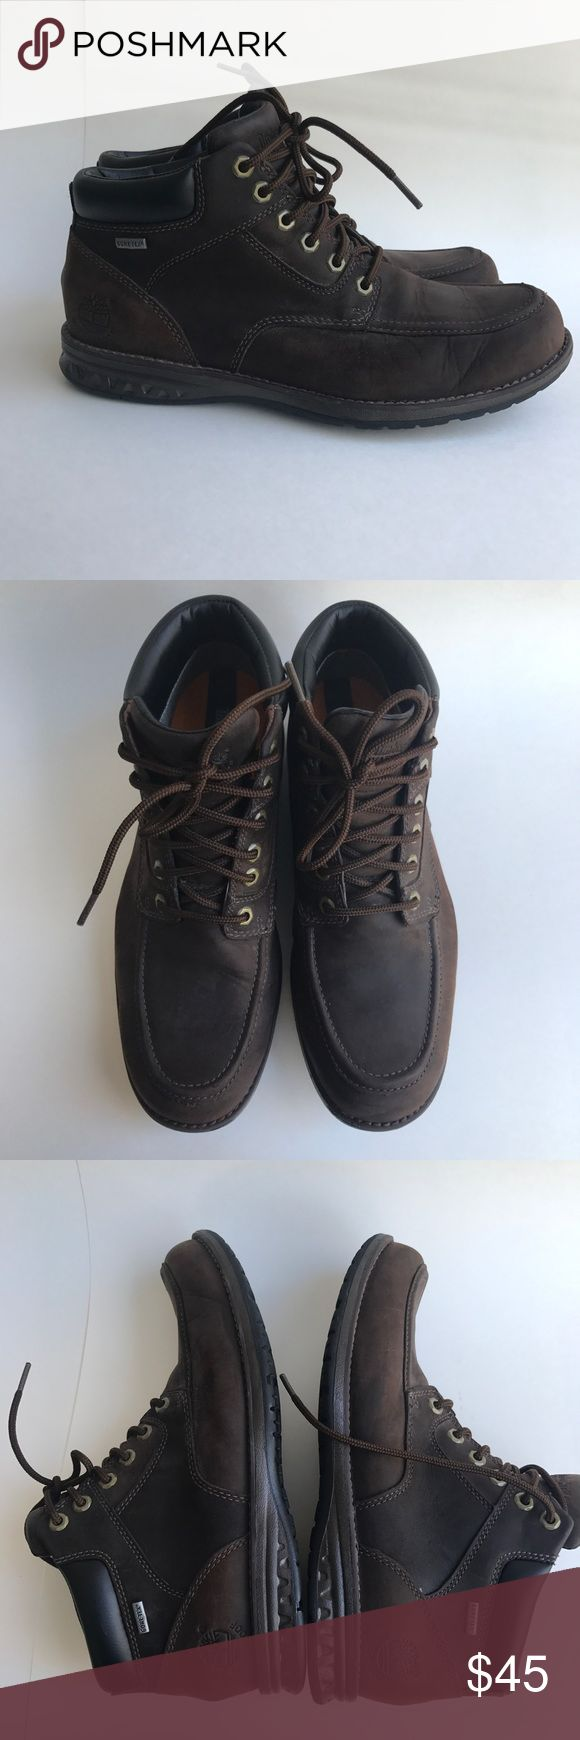 Timberland Men's Boots Brown Leather Gore Tex 9.5M In great condition, worn twice.  A few minor scuffs from normal wear as shown in pictures Timberland Shoes Chukka Boots